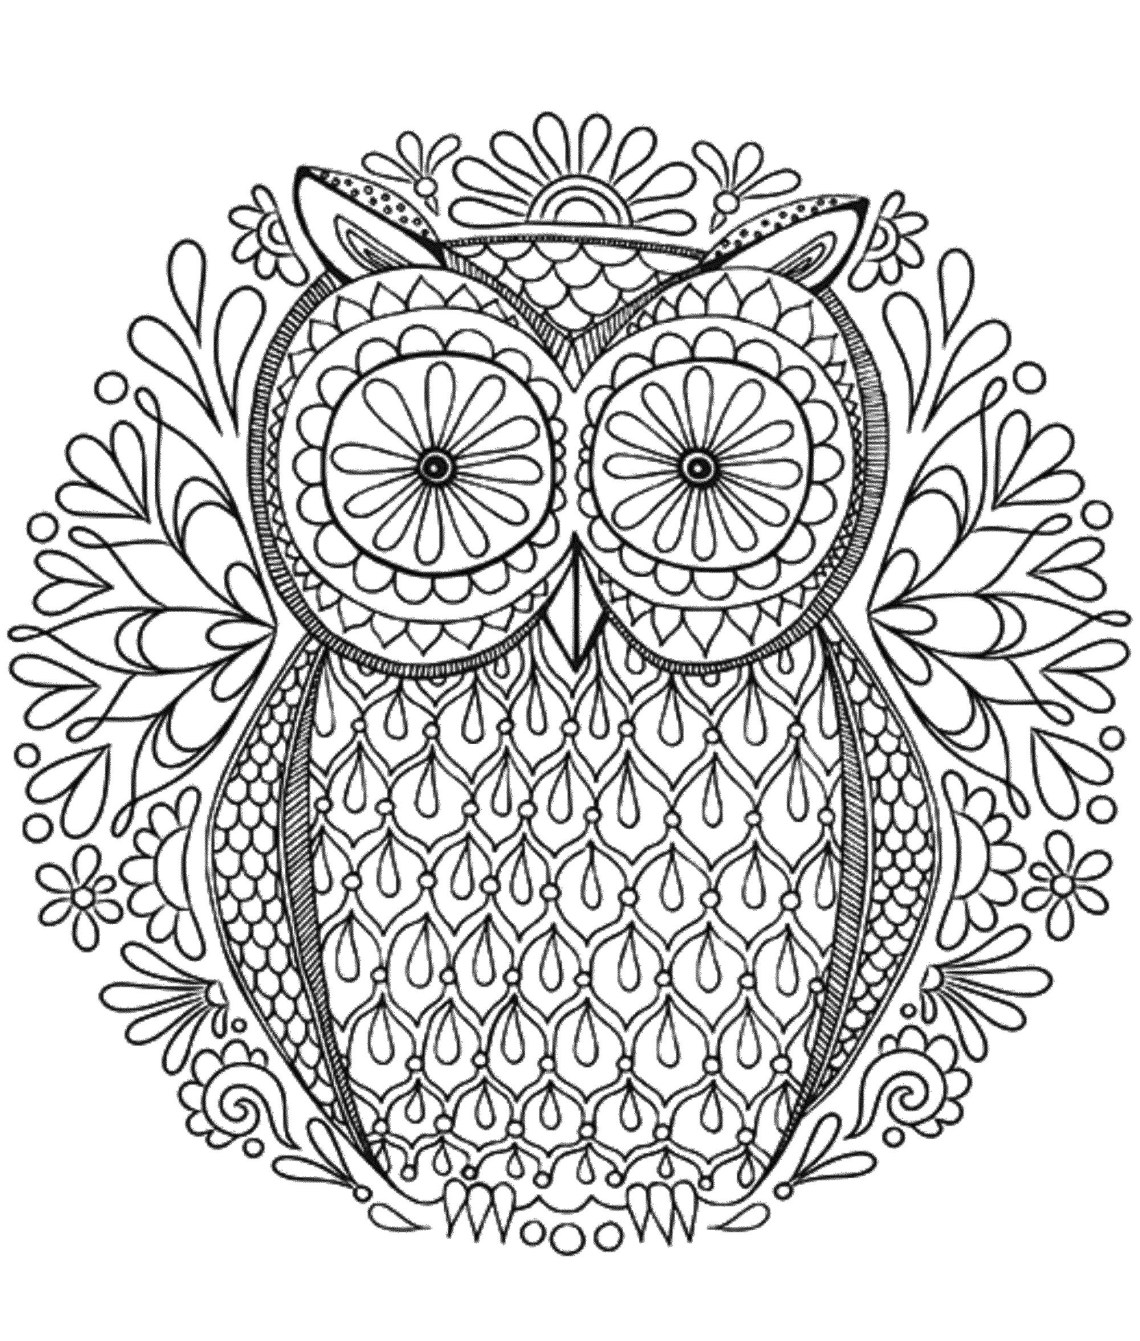 Mandala to download in pdf 6 - M&alas Adult Coloring Pages | free mandala colouring pages for adults